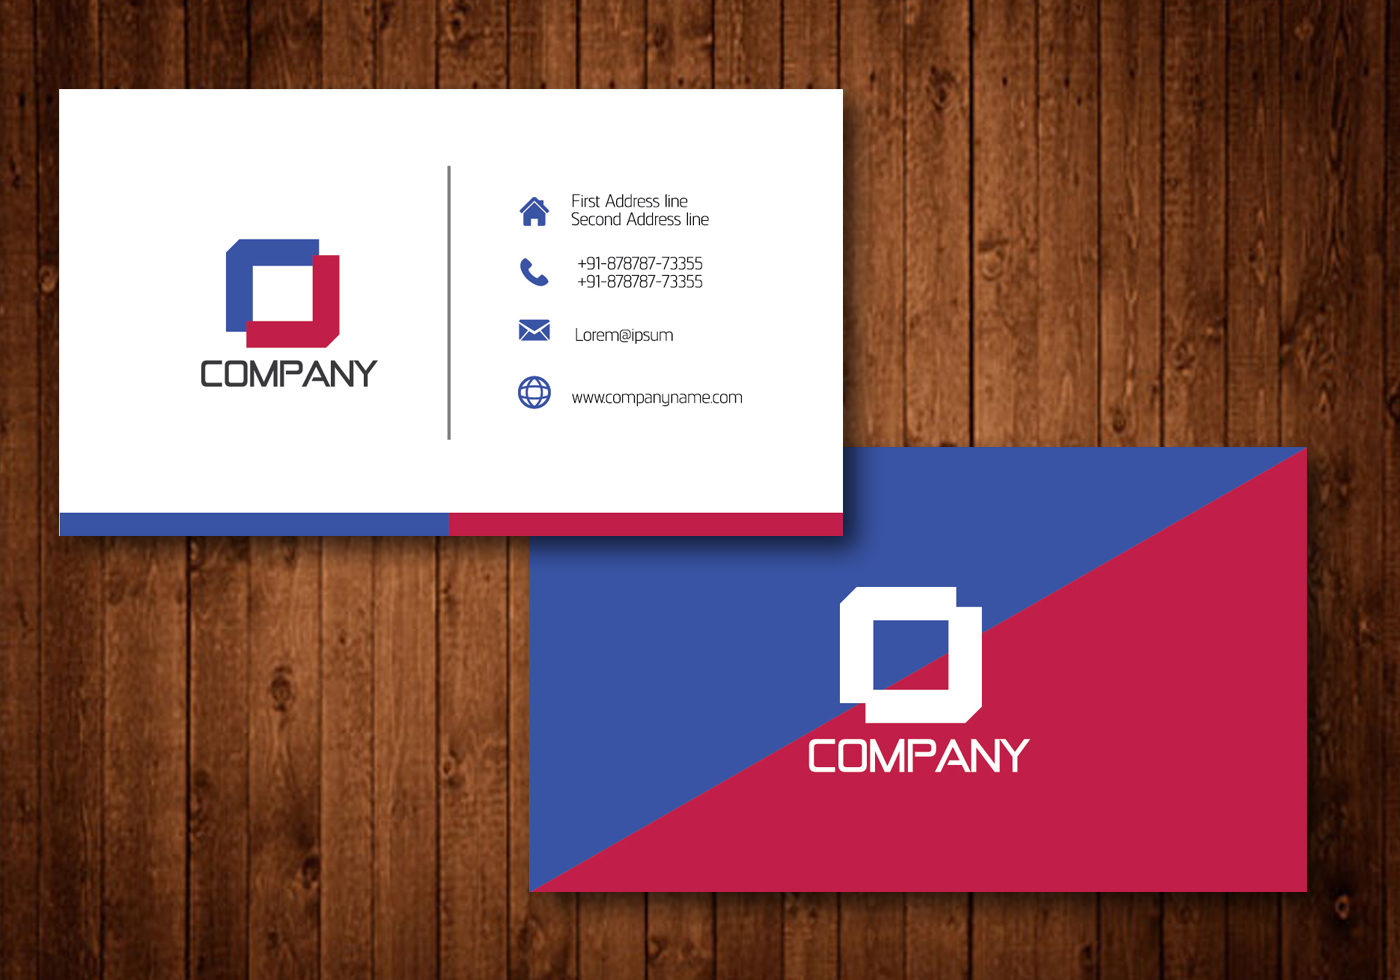 Diagonal creative business card template vector download free diagonal creative business card template vector download free vector art stock graphics images flashek Gallery